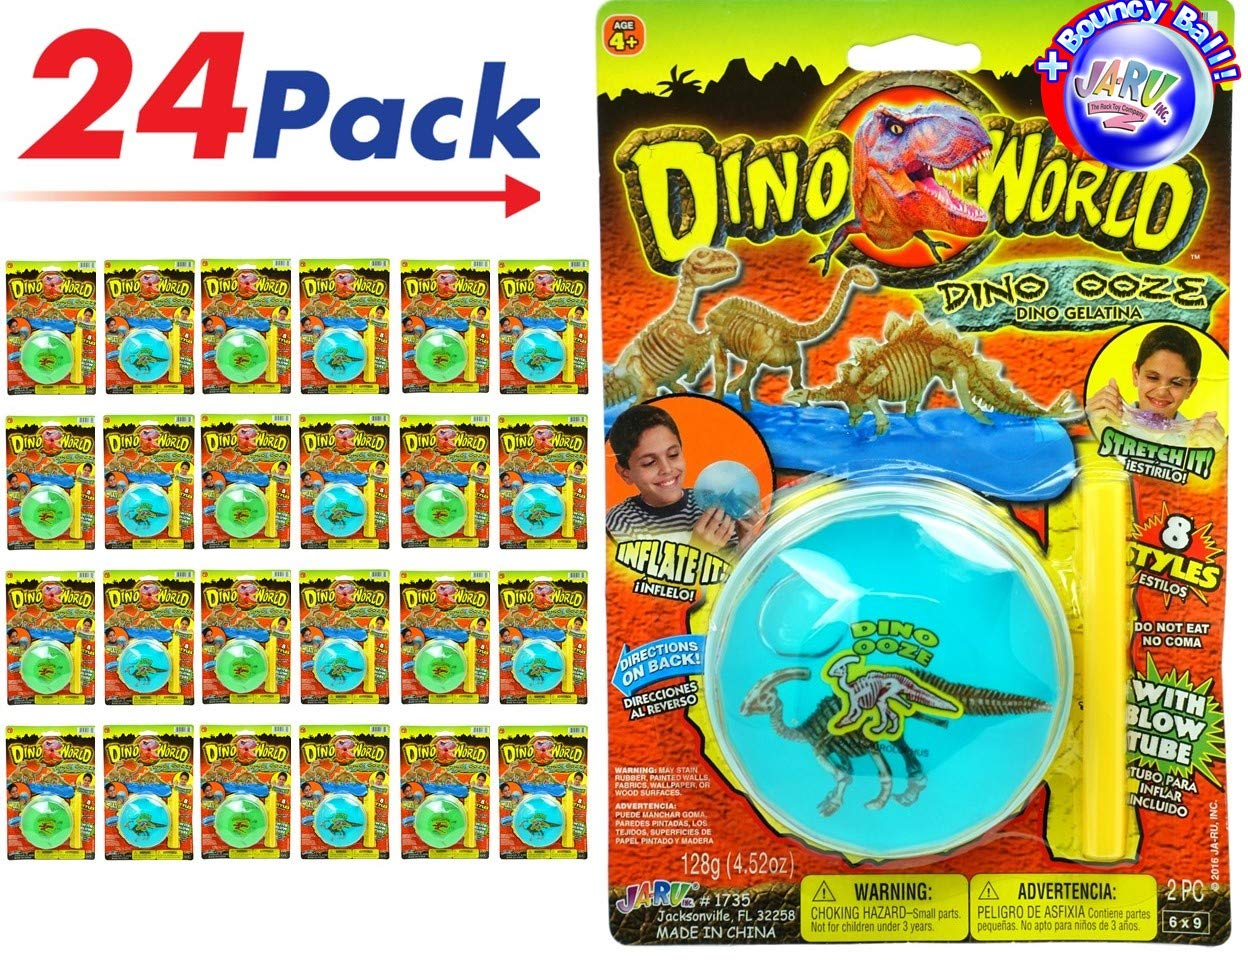 JA-RU Jurassic World Soft Inflatable Magic Slime (Pack of 24) Novelty New Slime for Kids Party Item #1735-24p